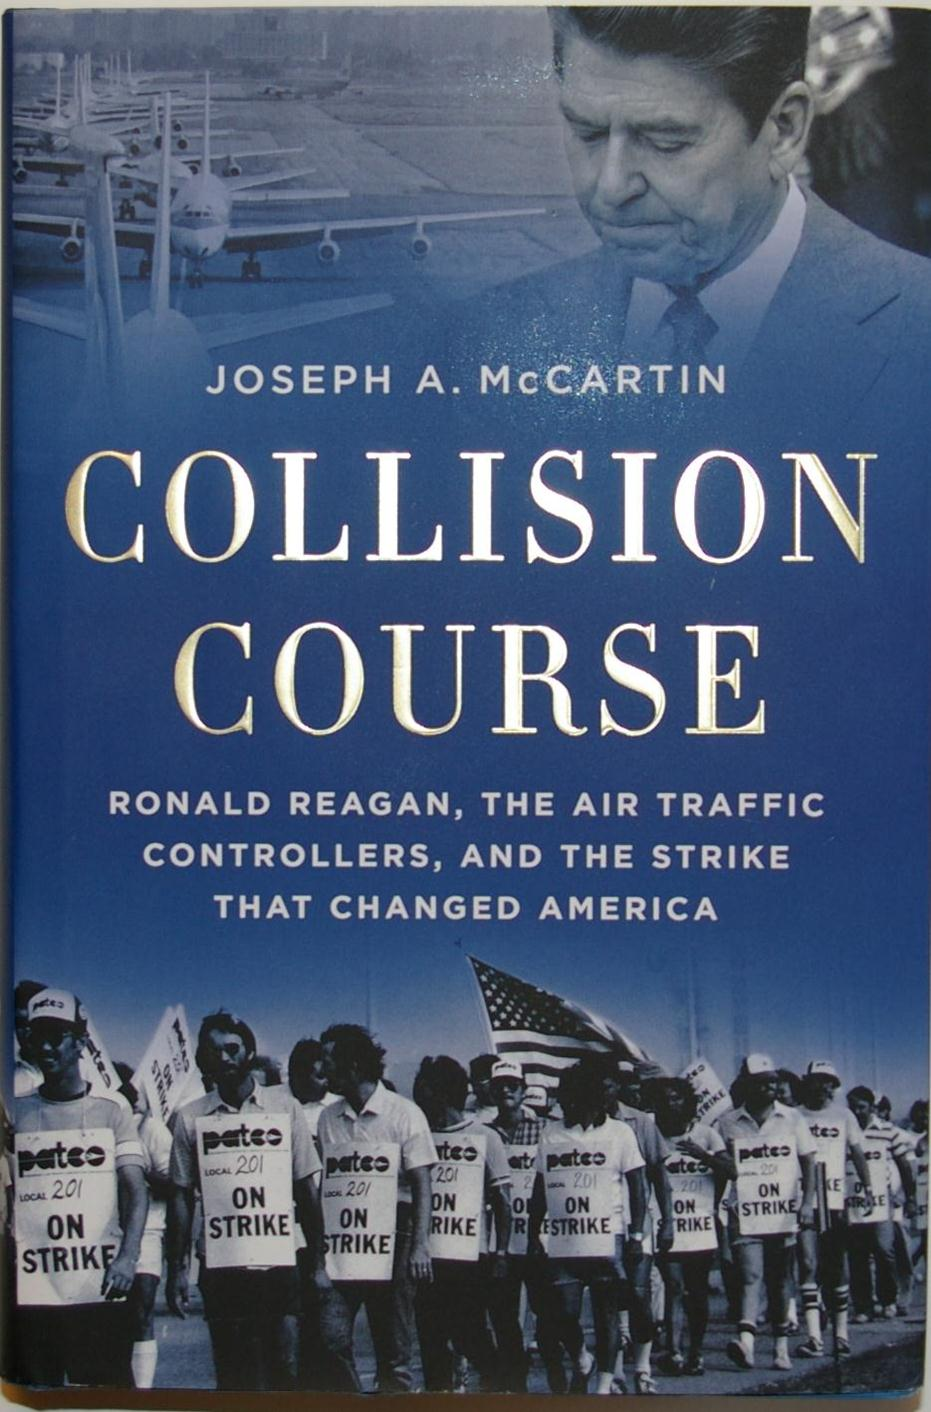 Collision Course: Ronald Reagan, the Air Traffic Controllers, and the Strike That Changed America book cover